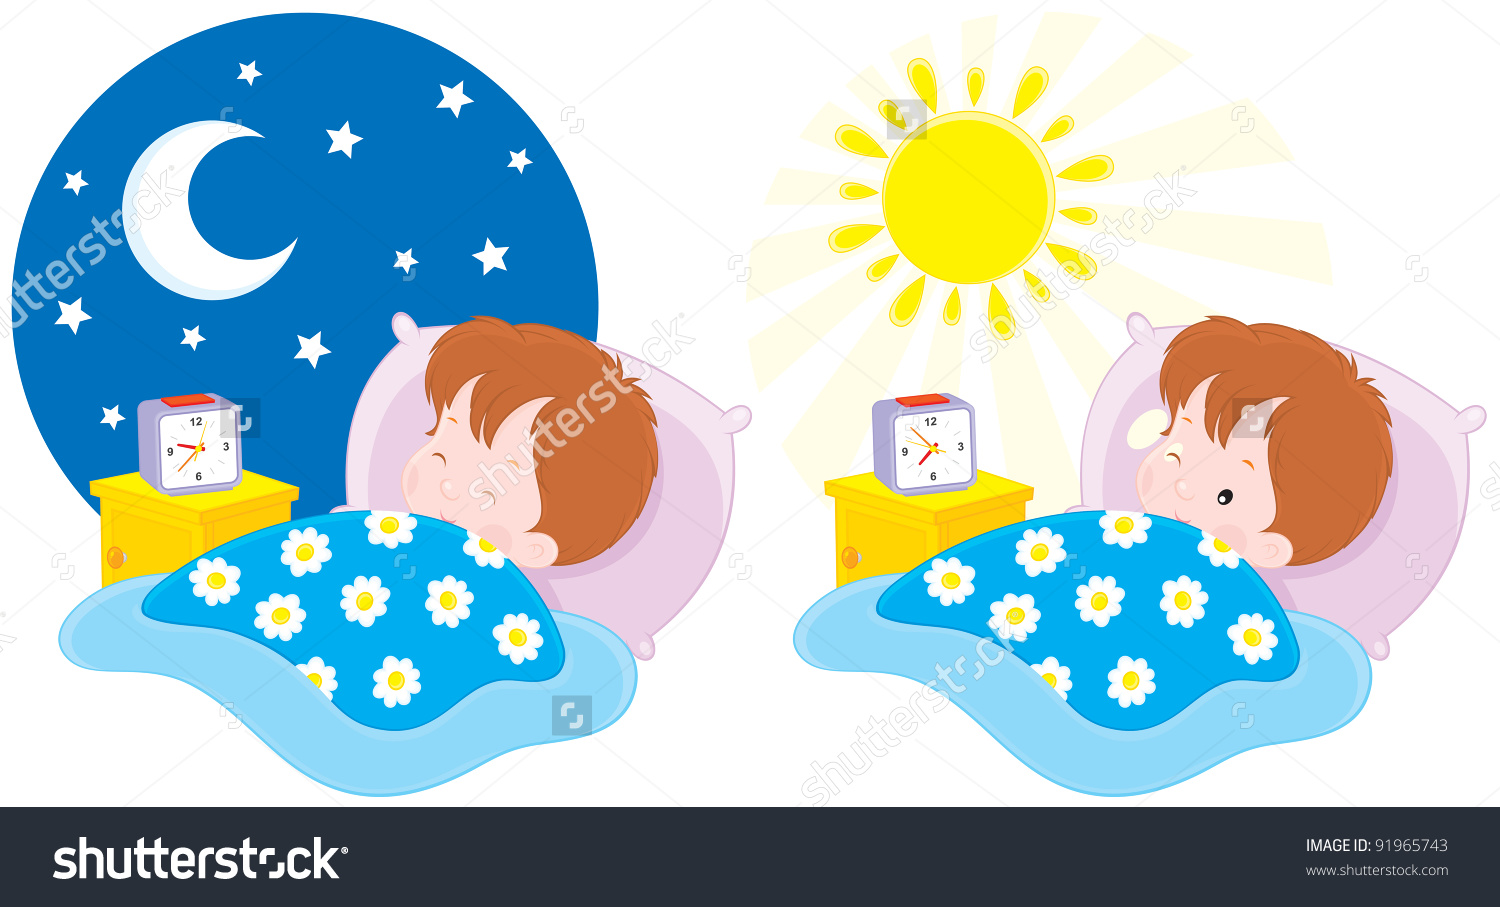 Wake up early in the morning clipart.